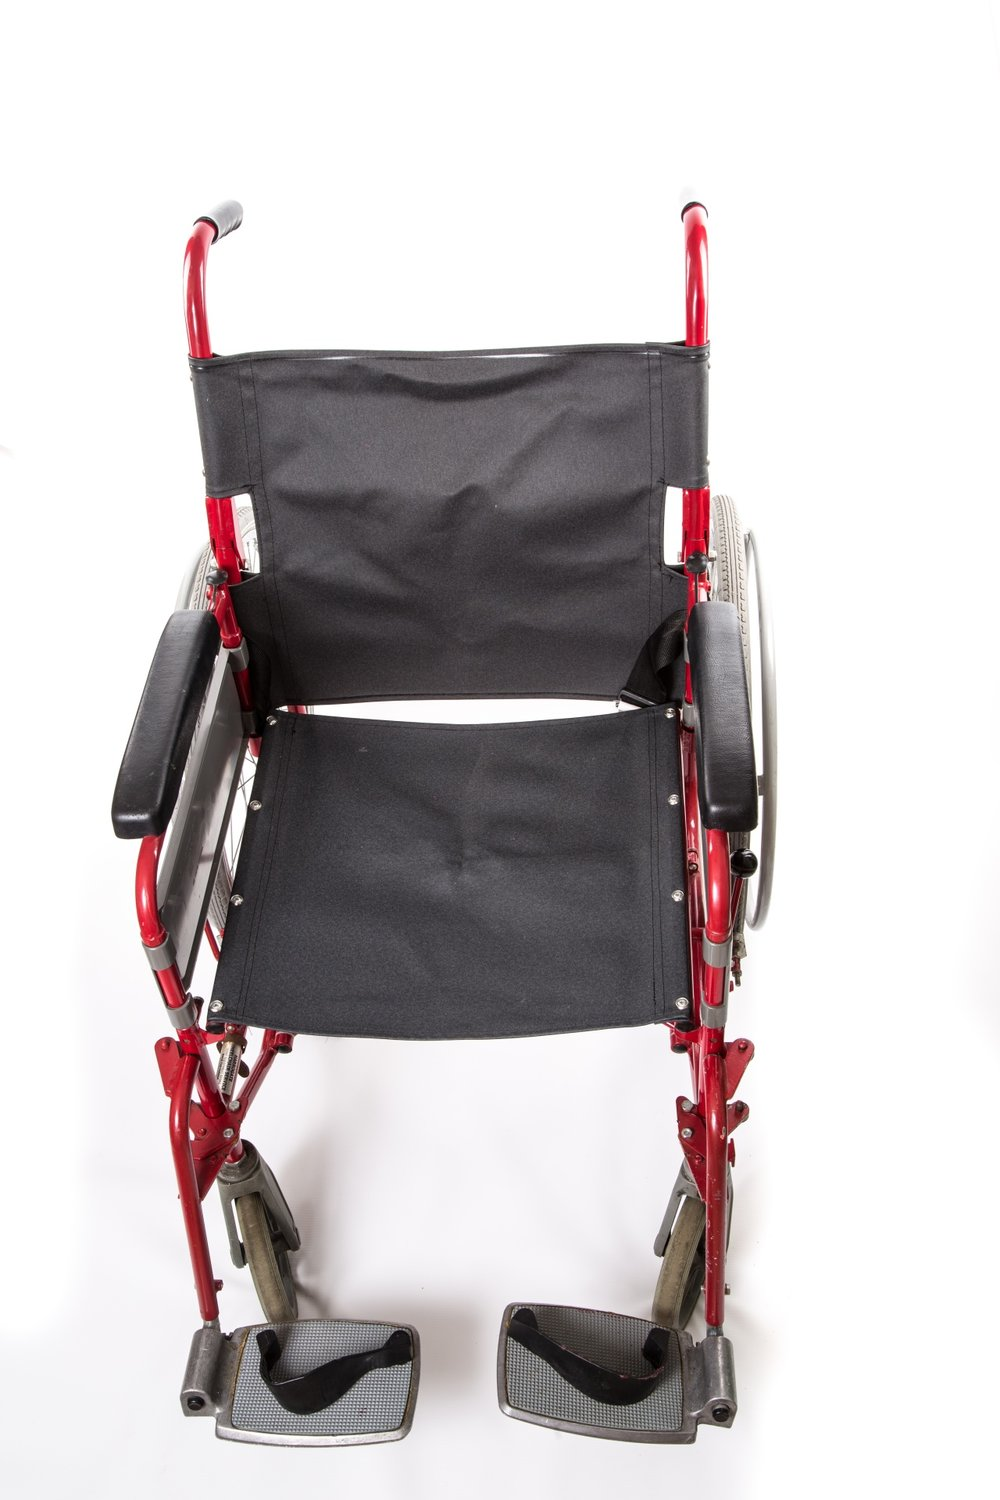 wheelchair-1463041399pUc.jpg